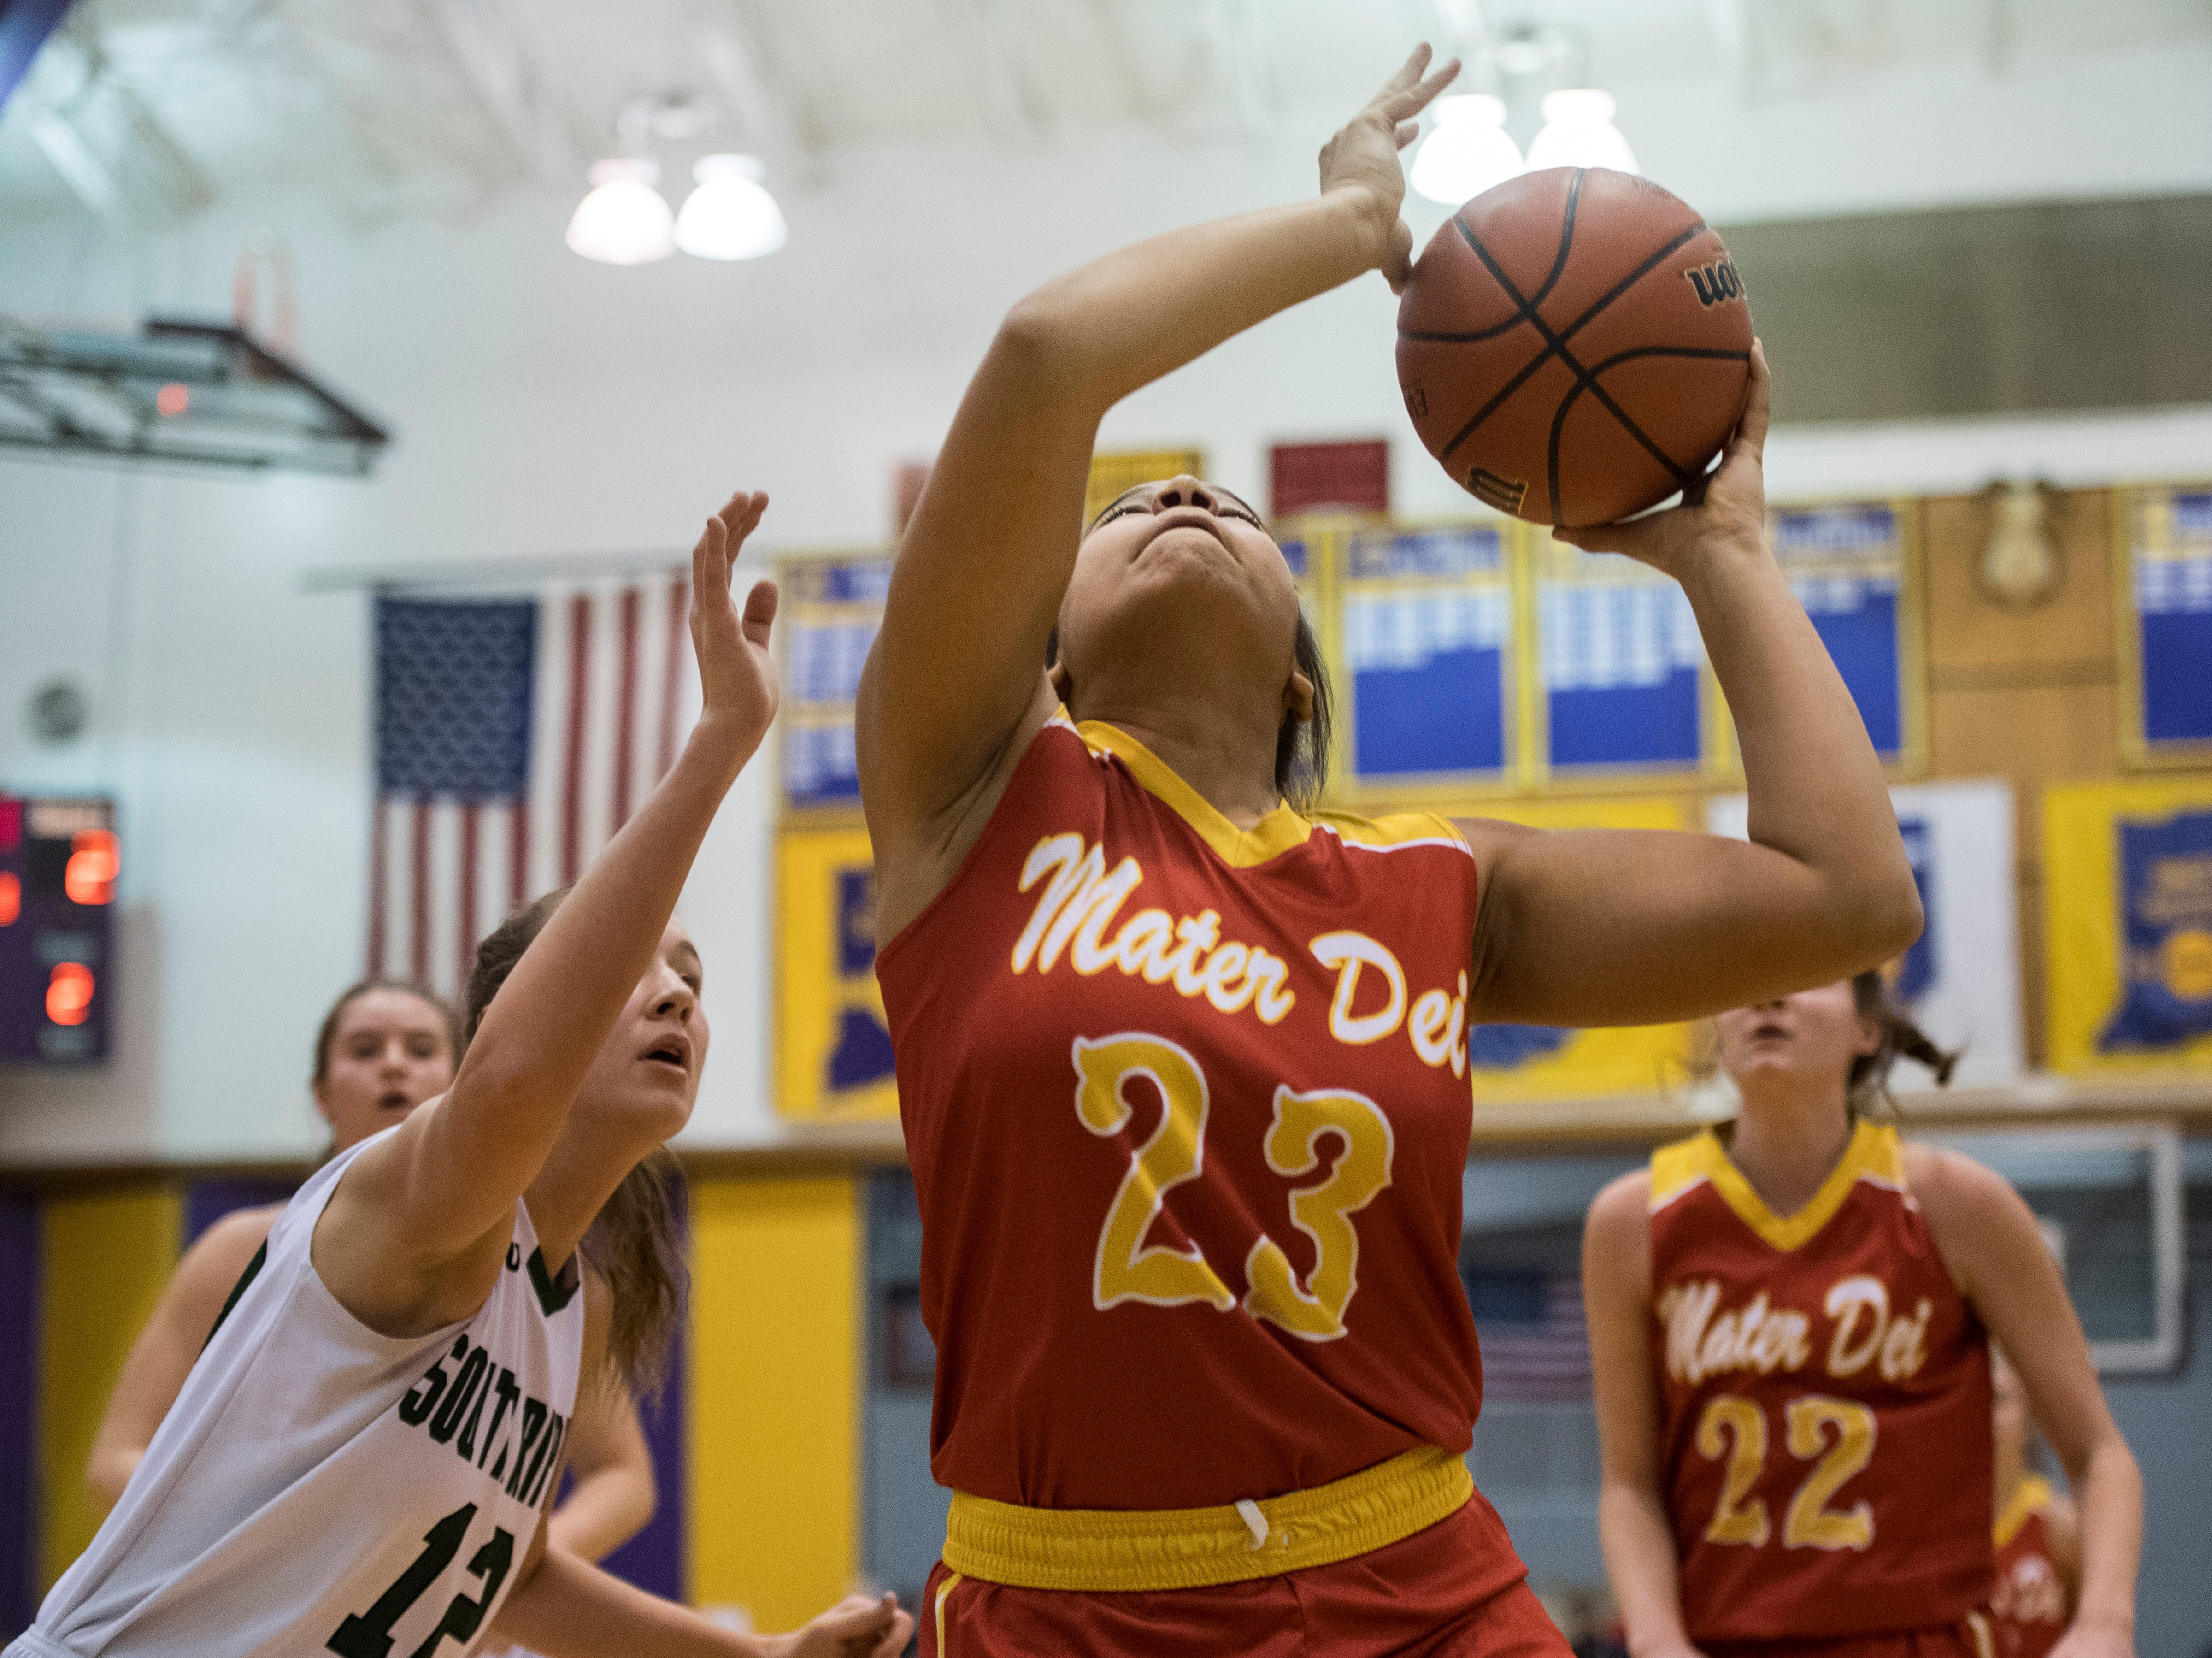 Mater Dei's Mariah Dickerson (23) takes a shot during the IHSAA Class 2A Girls' Basketball Regional #12 game against the against the South Ripley Raiders at Paoli Jr. Sr. high school Saturday, Feb. 9, 2019.